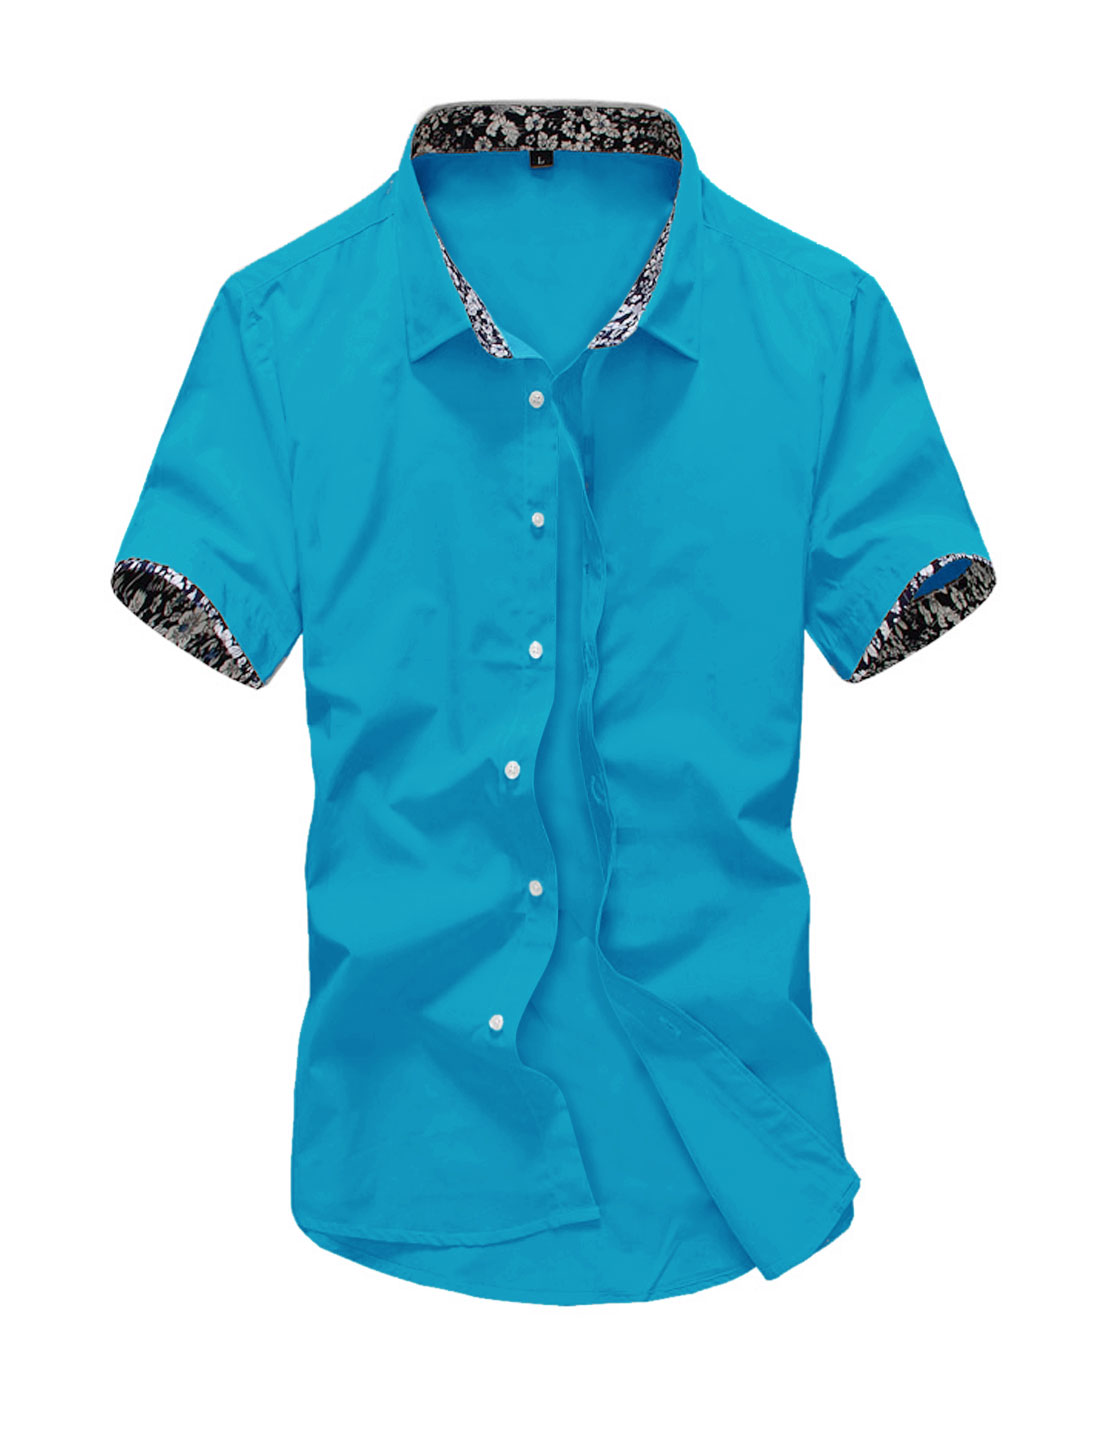 Men Short Sleeve Point Collar Button Down Summer Casual Shirts Turquoise M